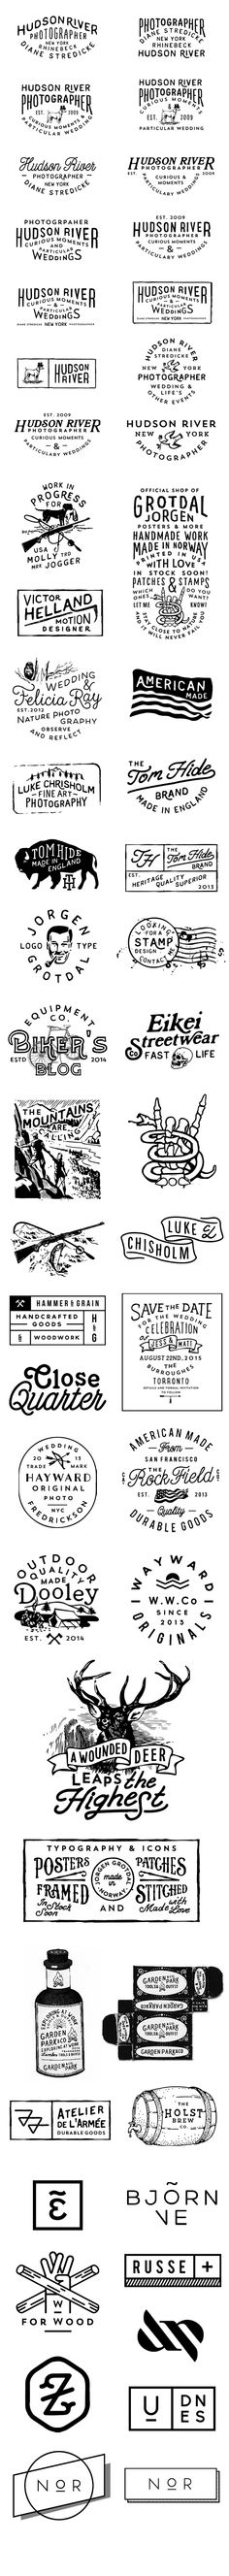 Hand drawn type and logo types and badges. Vintage look and feel. graphic design\\modern logo\\brand identity\\black and white Typography Letters, Graphic Design Typography, Typography Served, Web Design, Schrift Design, Typographie Inspiration, Typographie Logo, Logo Template, Hand Drawn Type